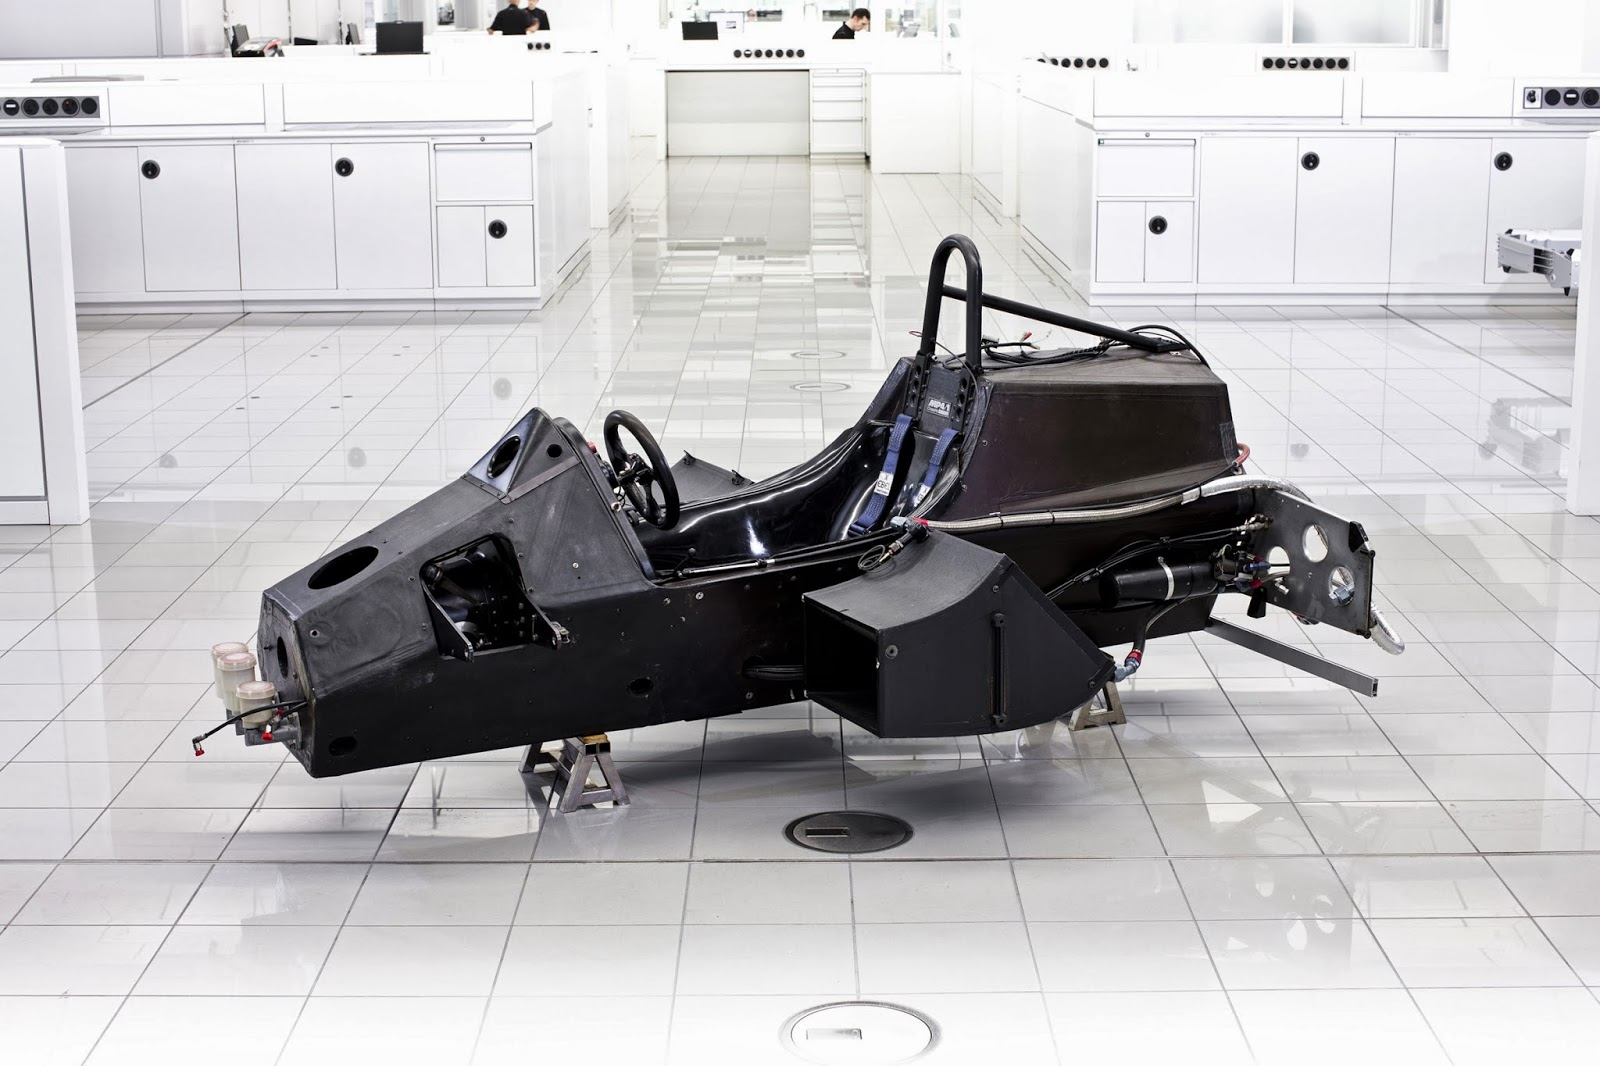 Chassis design of f1 car - Allianz Get Street Smart With Mercedes Amg F1 Lewis Hamilton And Nico Rosberg